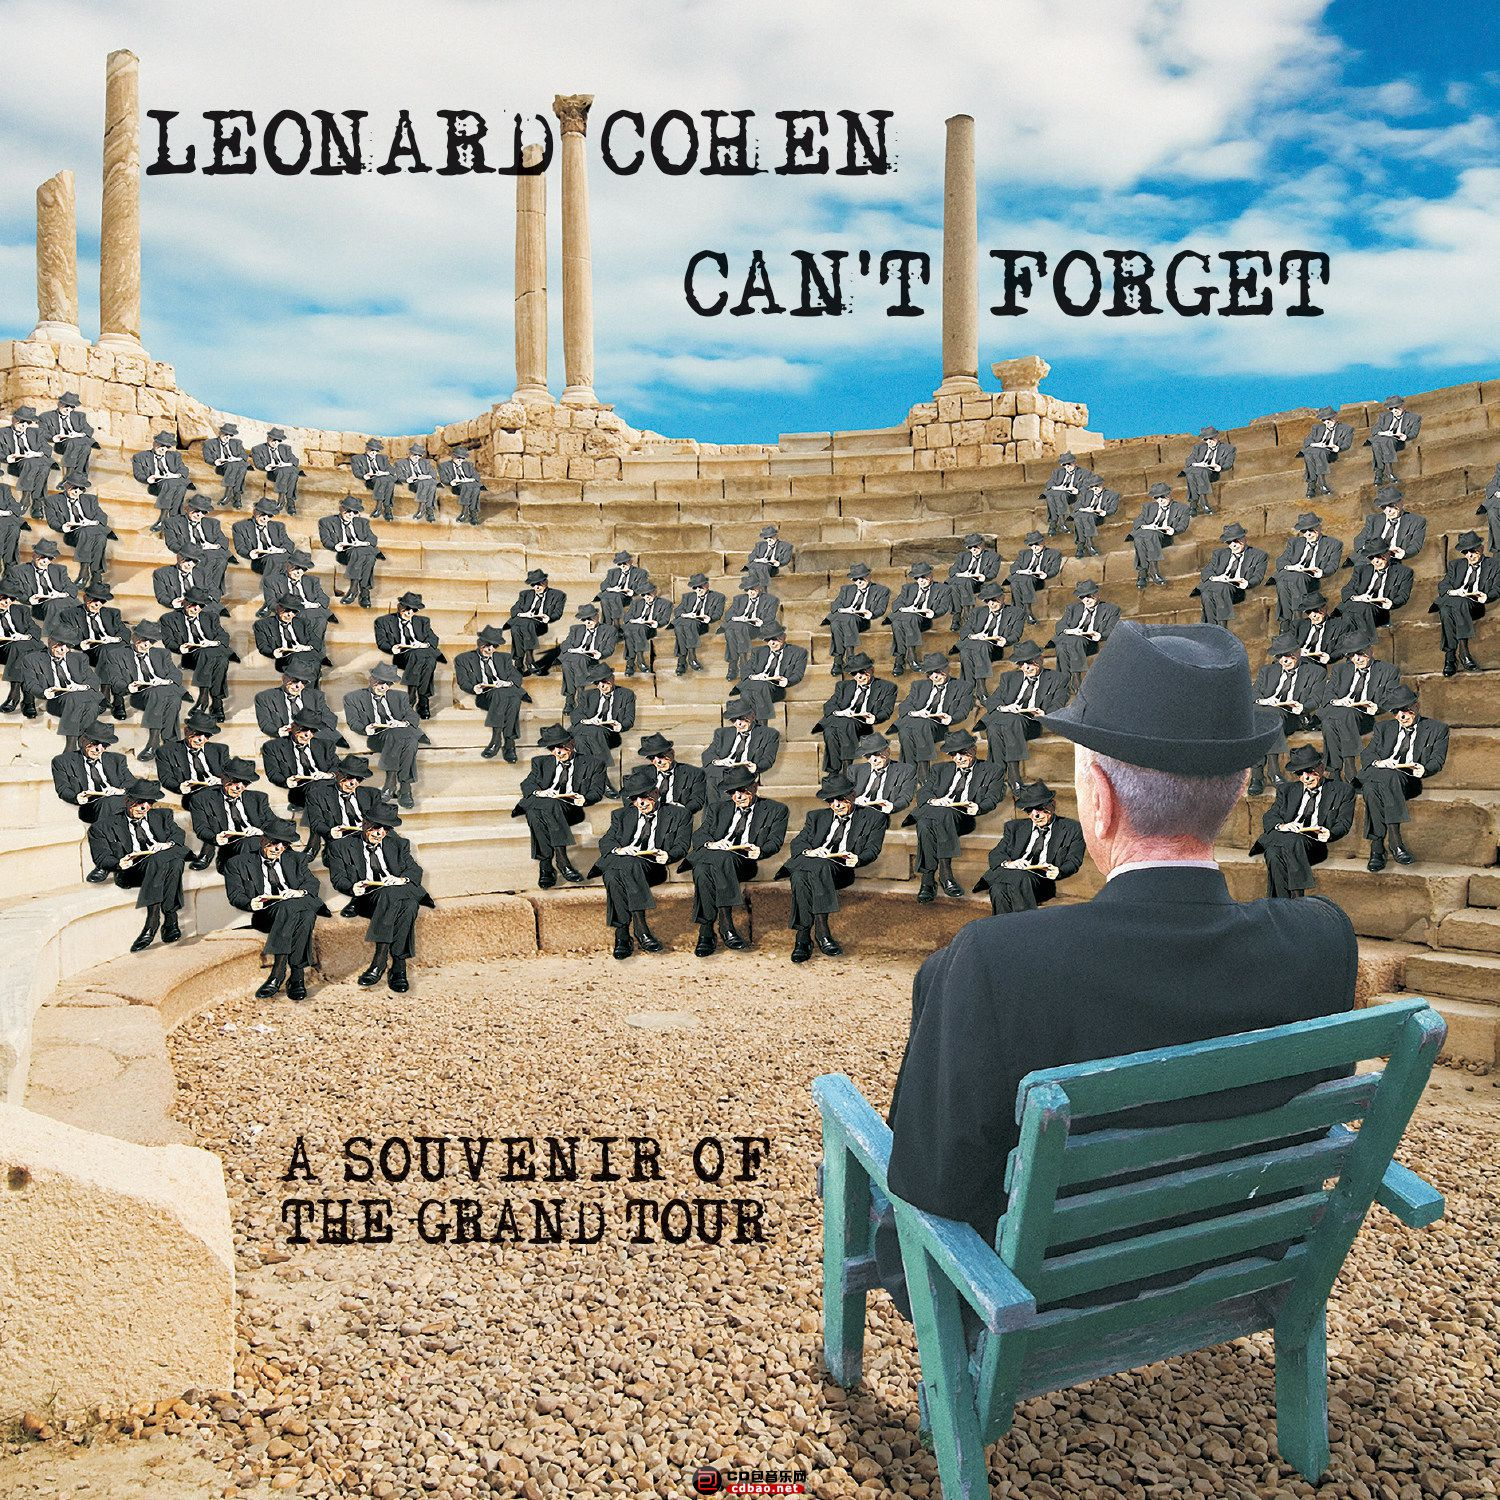 Leonard Cohen - Can't Forget - A Souvenir Of The Grand Tour (2015)_dd-front.jpg